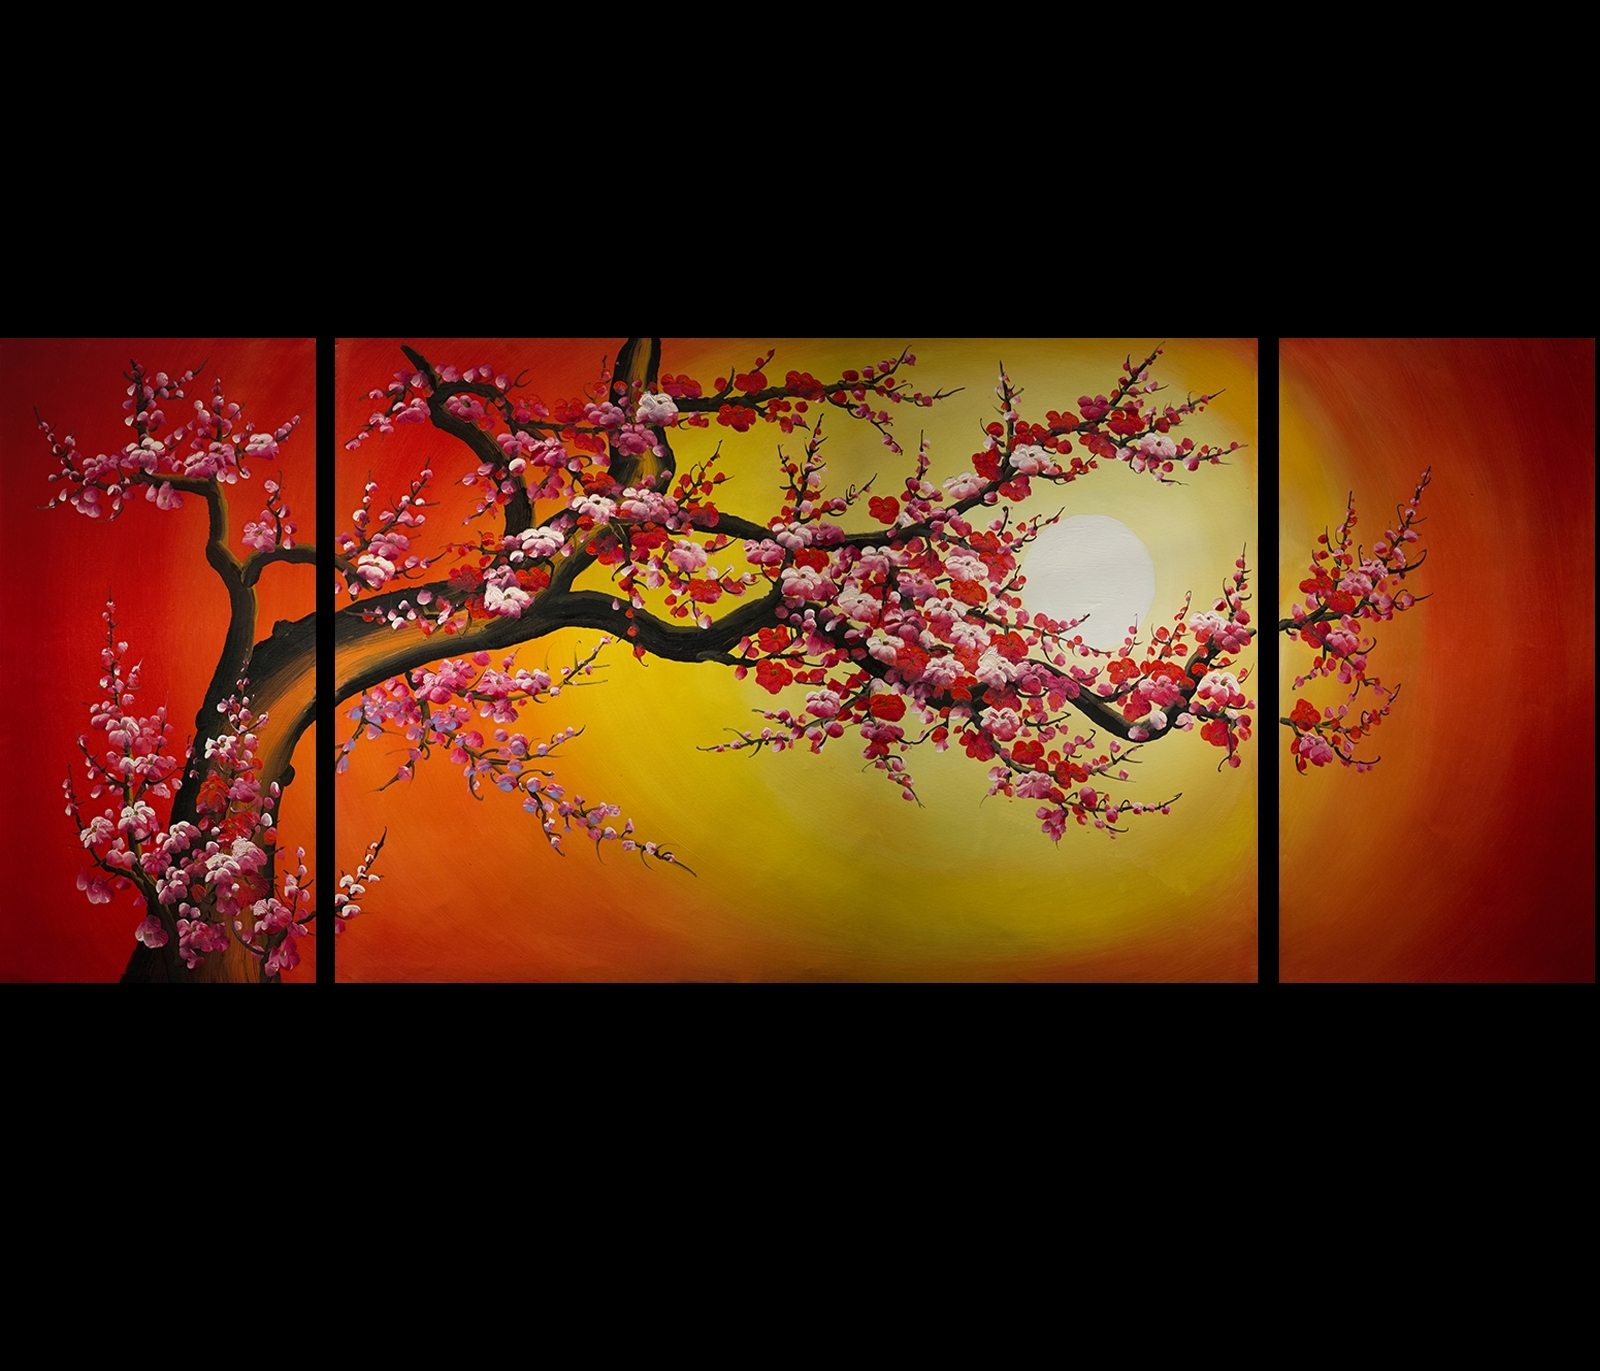 Chinese Cherry Blossom Feng Shui Oil Painting Abstract Art Modern Intended For 2018 Cherry Blossom Oil Painting Modern Abstract Wall Art (View 10 of 20)